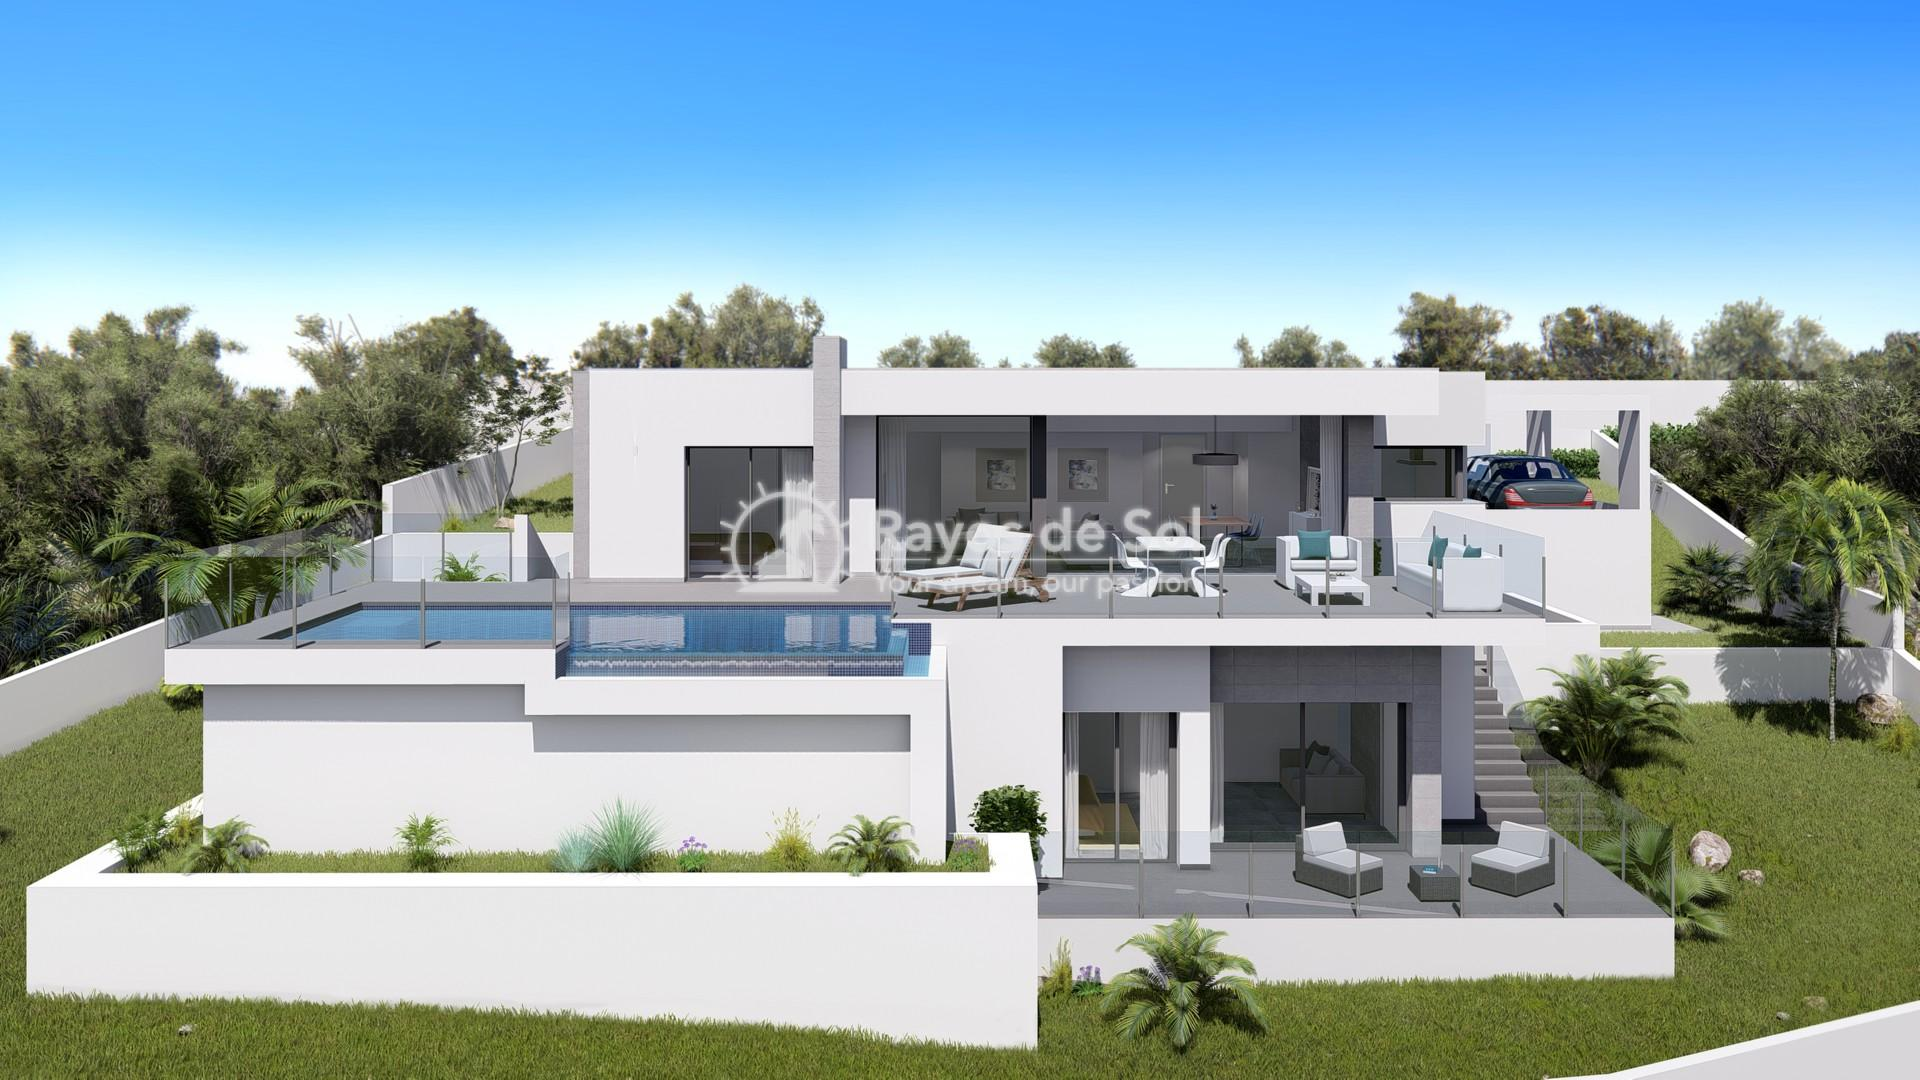 Single storey villa in Cumbre del Sol, Benitachell, Costa Blanca (BEVALIDCR) - 4